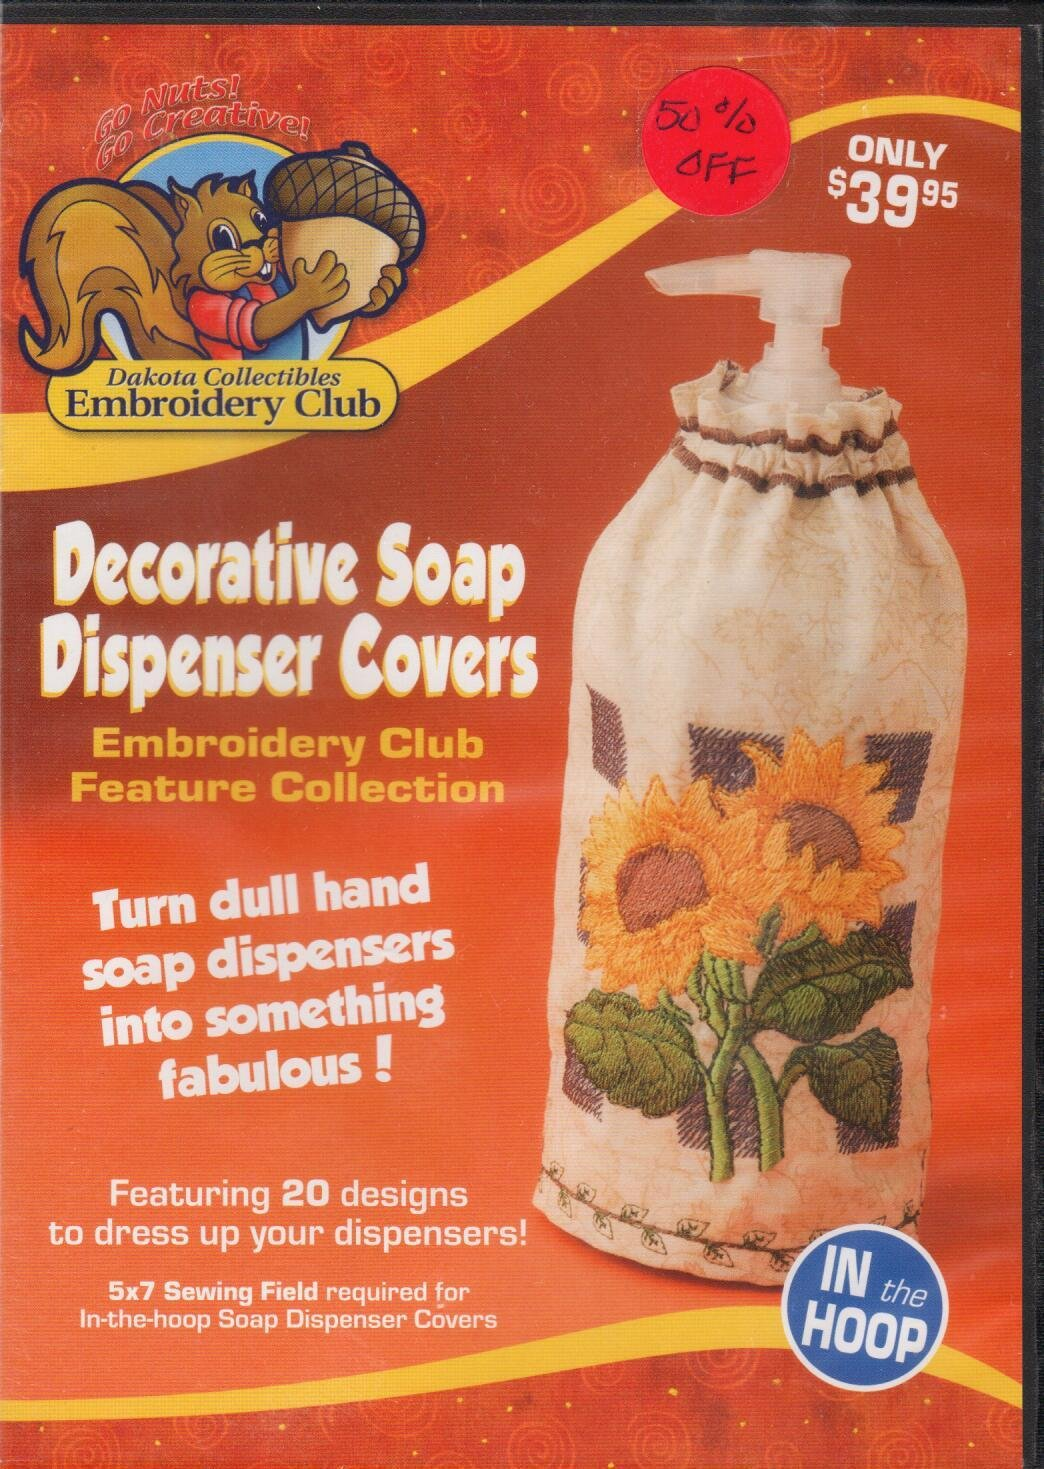 Decorative Soap Dispenser Covers